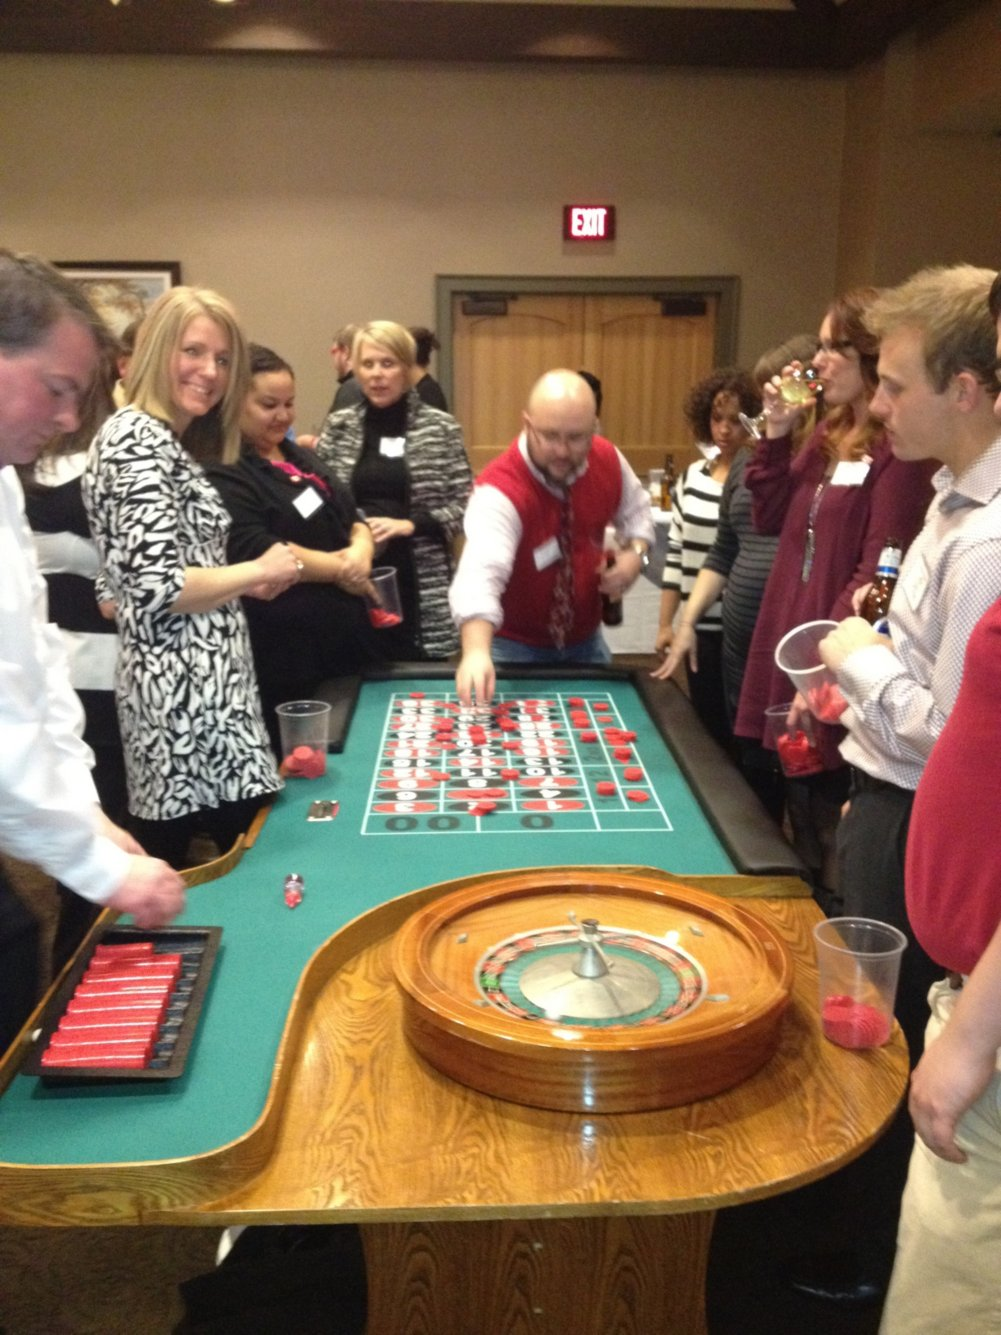 Baudvillians at the roulette table